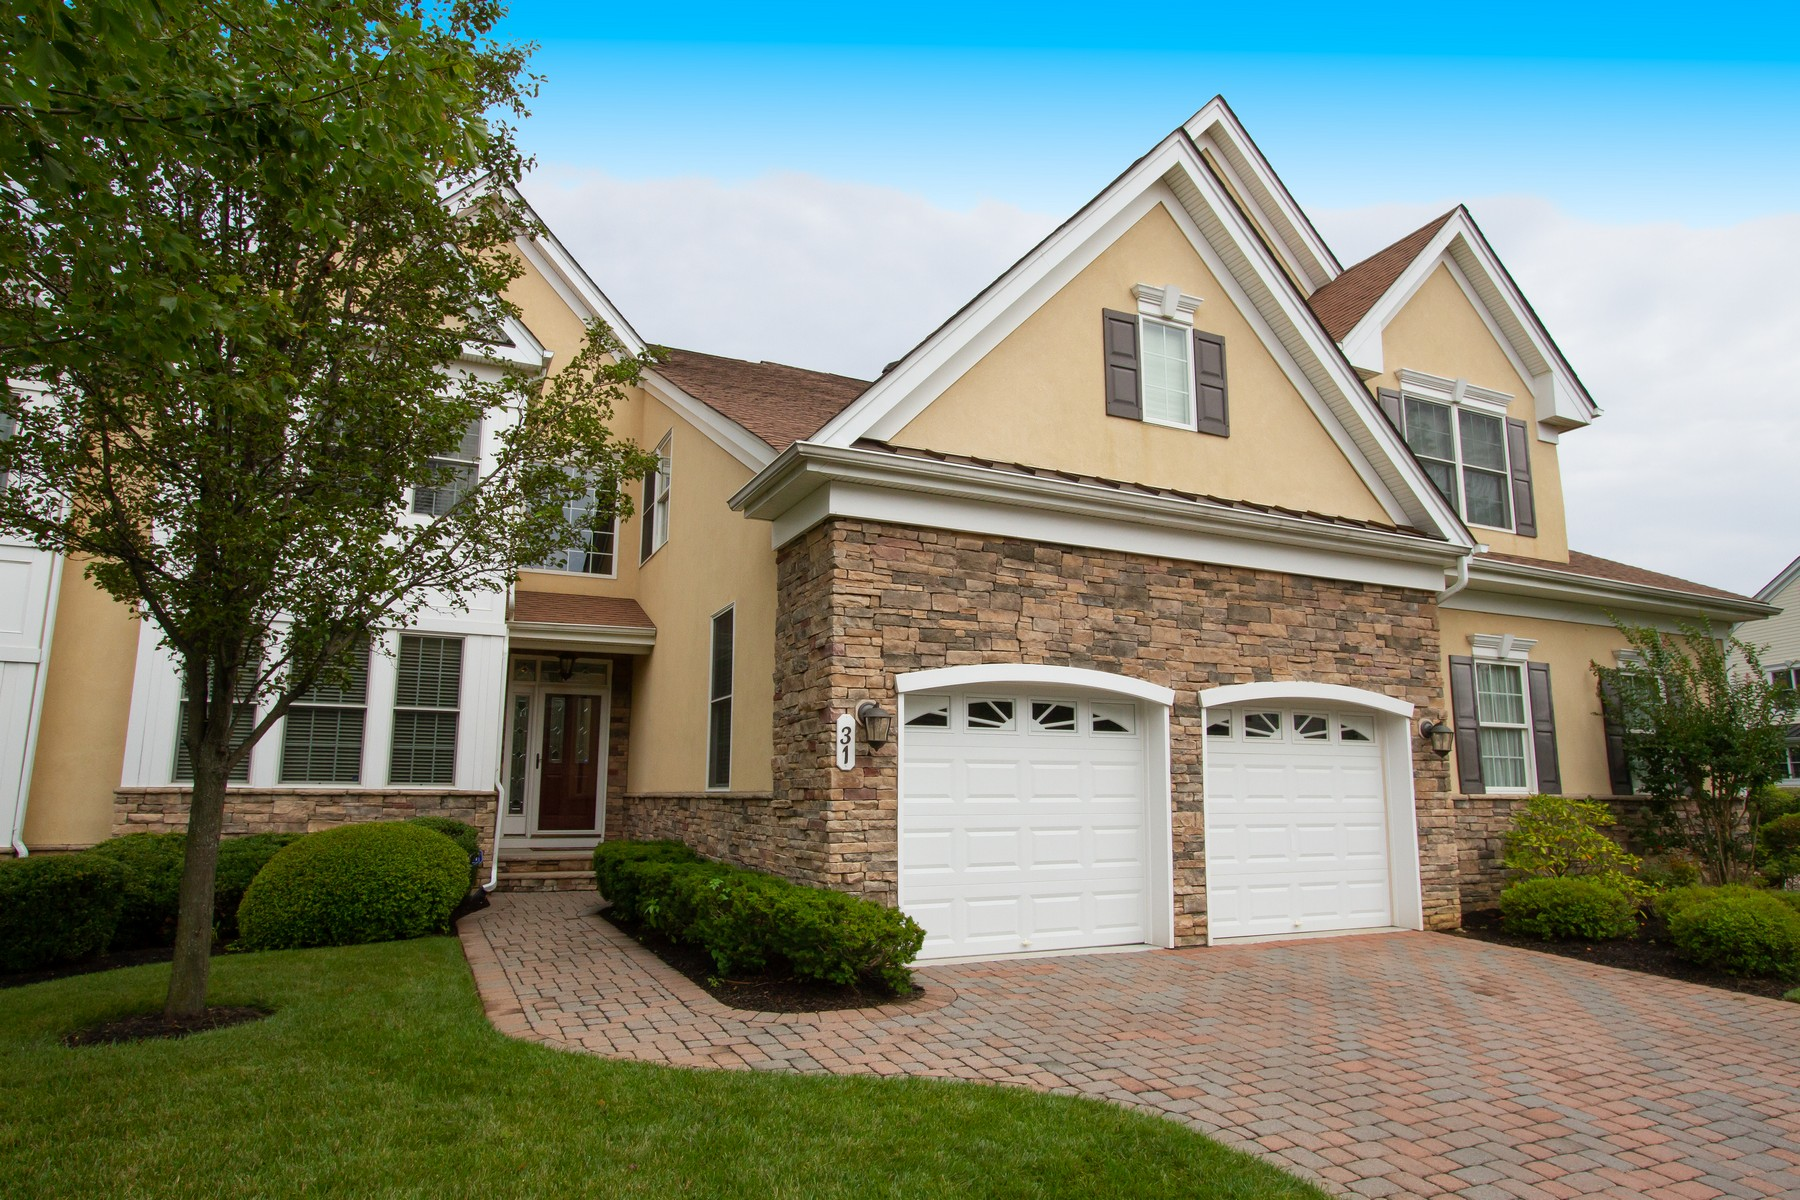 townhouses for Sale at Greenbriar Falls 31 Majestic Dr, Tinton Falls, New Jersey 07724 United States